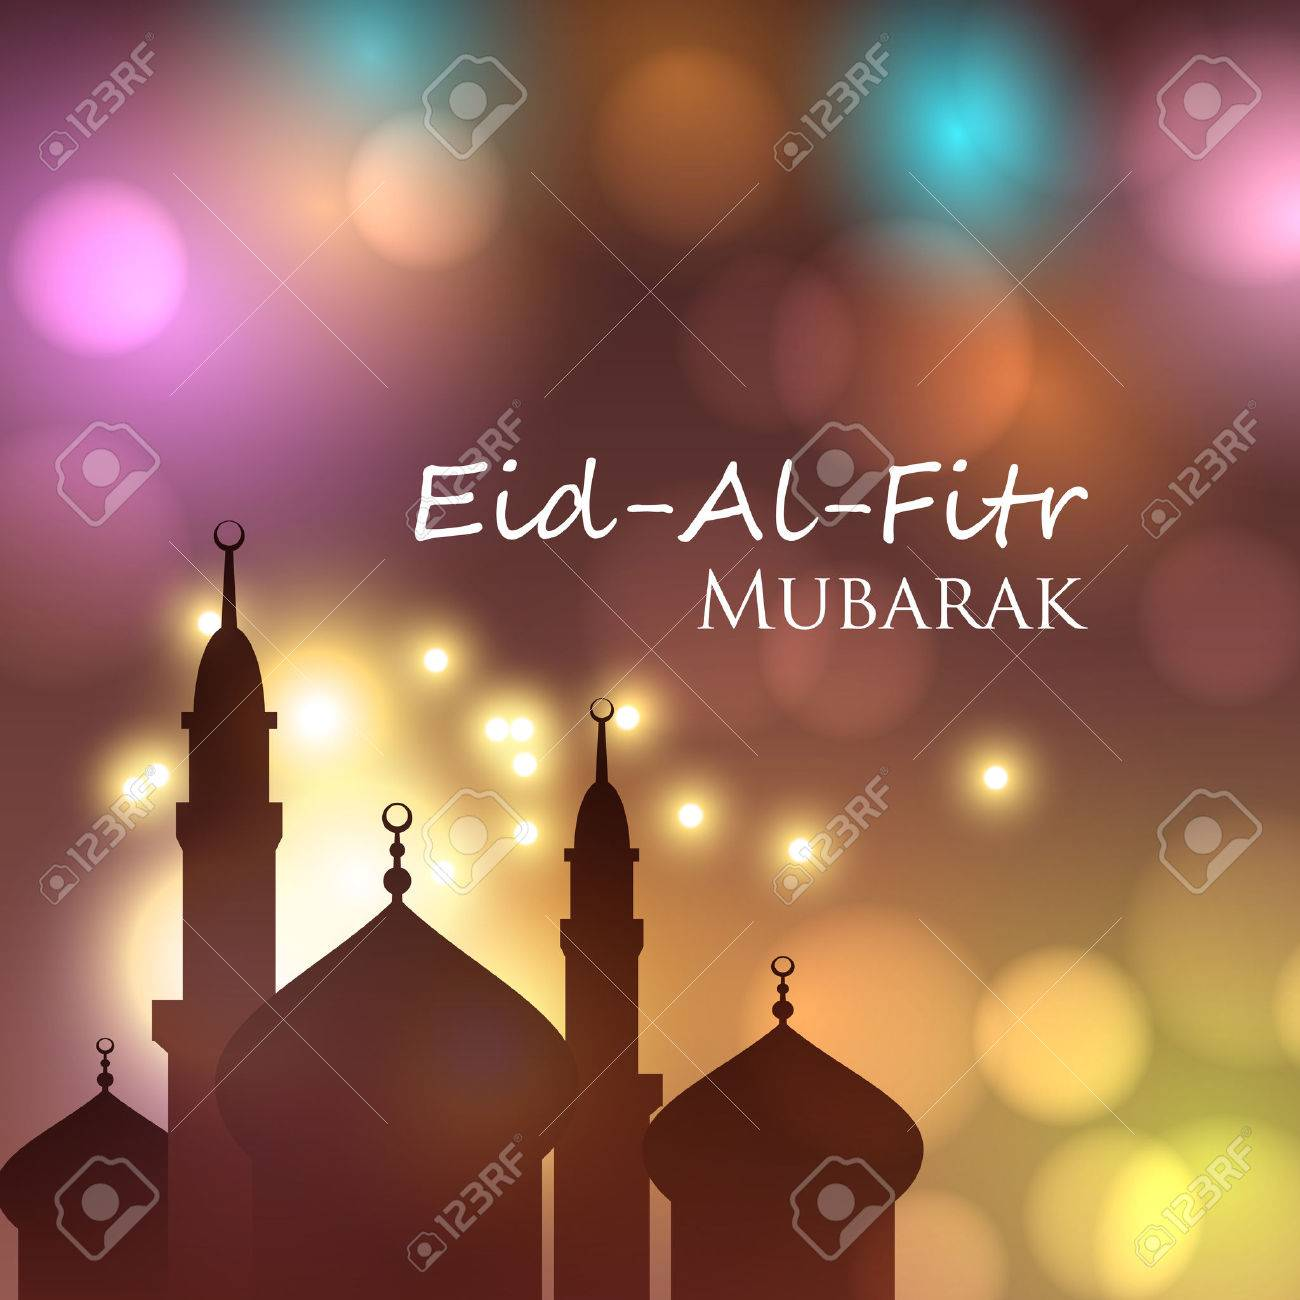 Vector Card For Muslim Festival Eid Al Fitr Mubarak Can Be Used